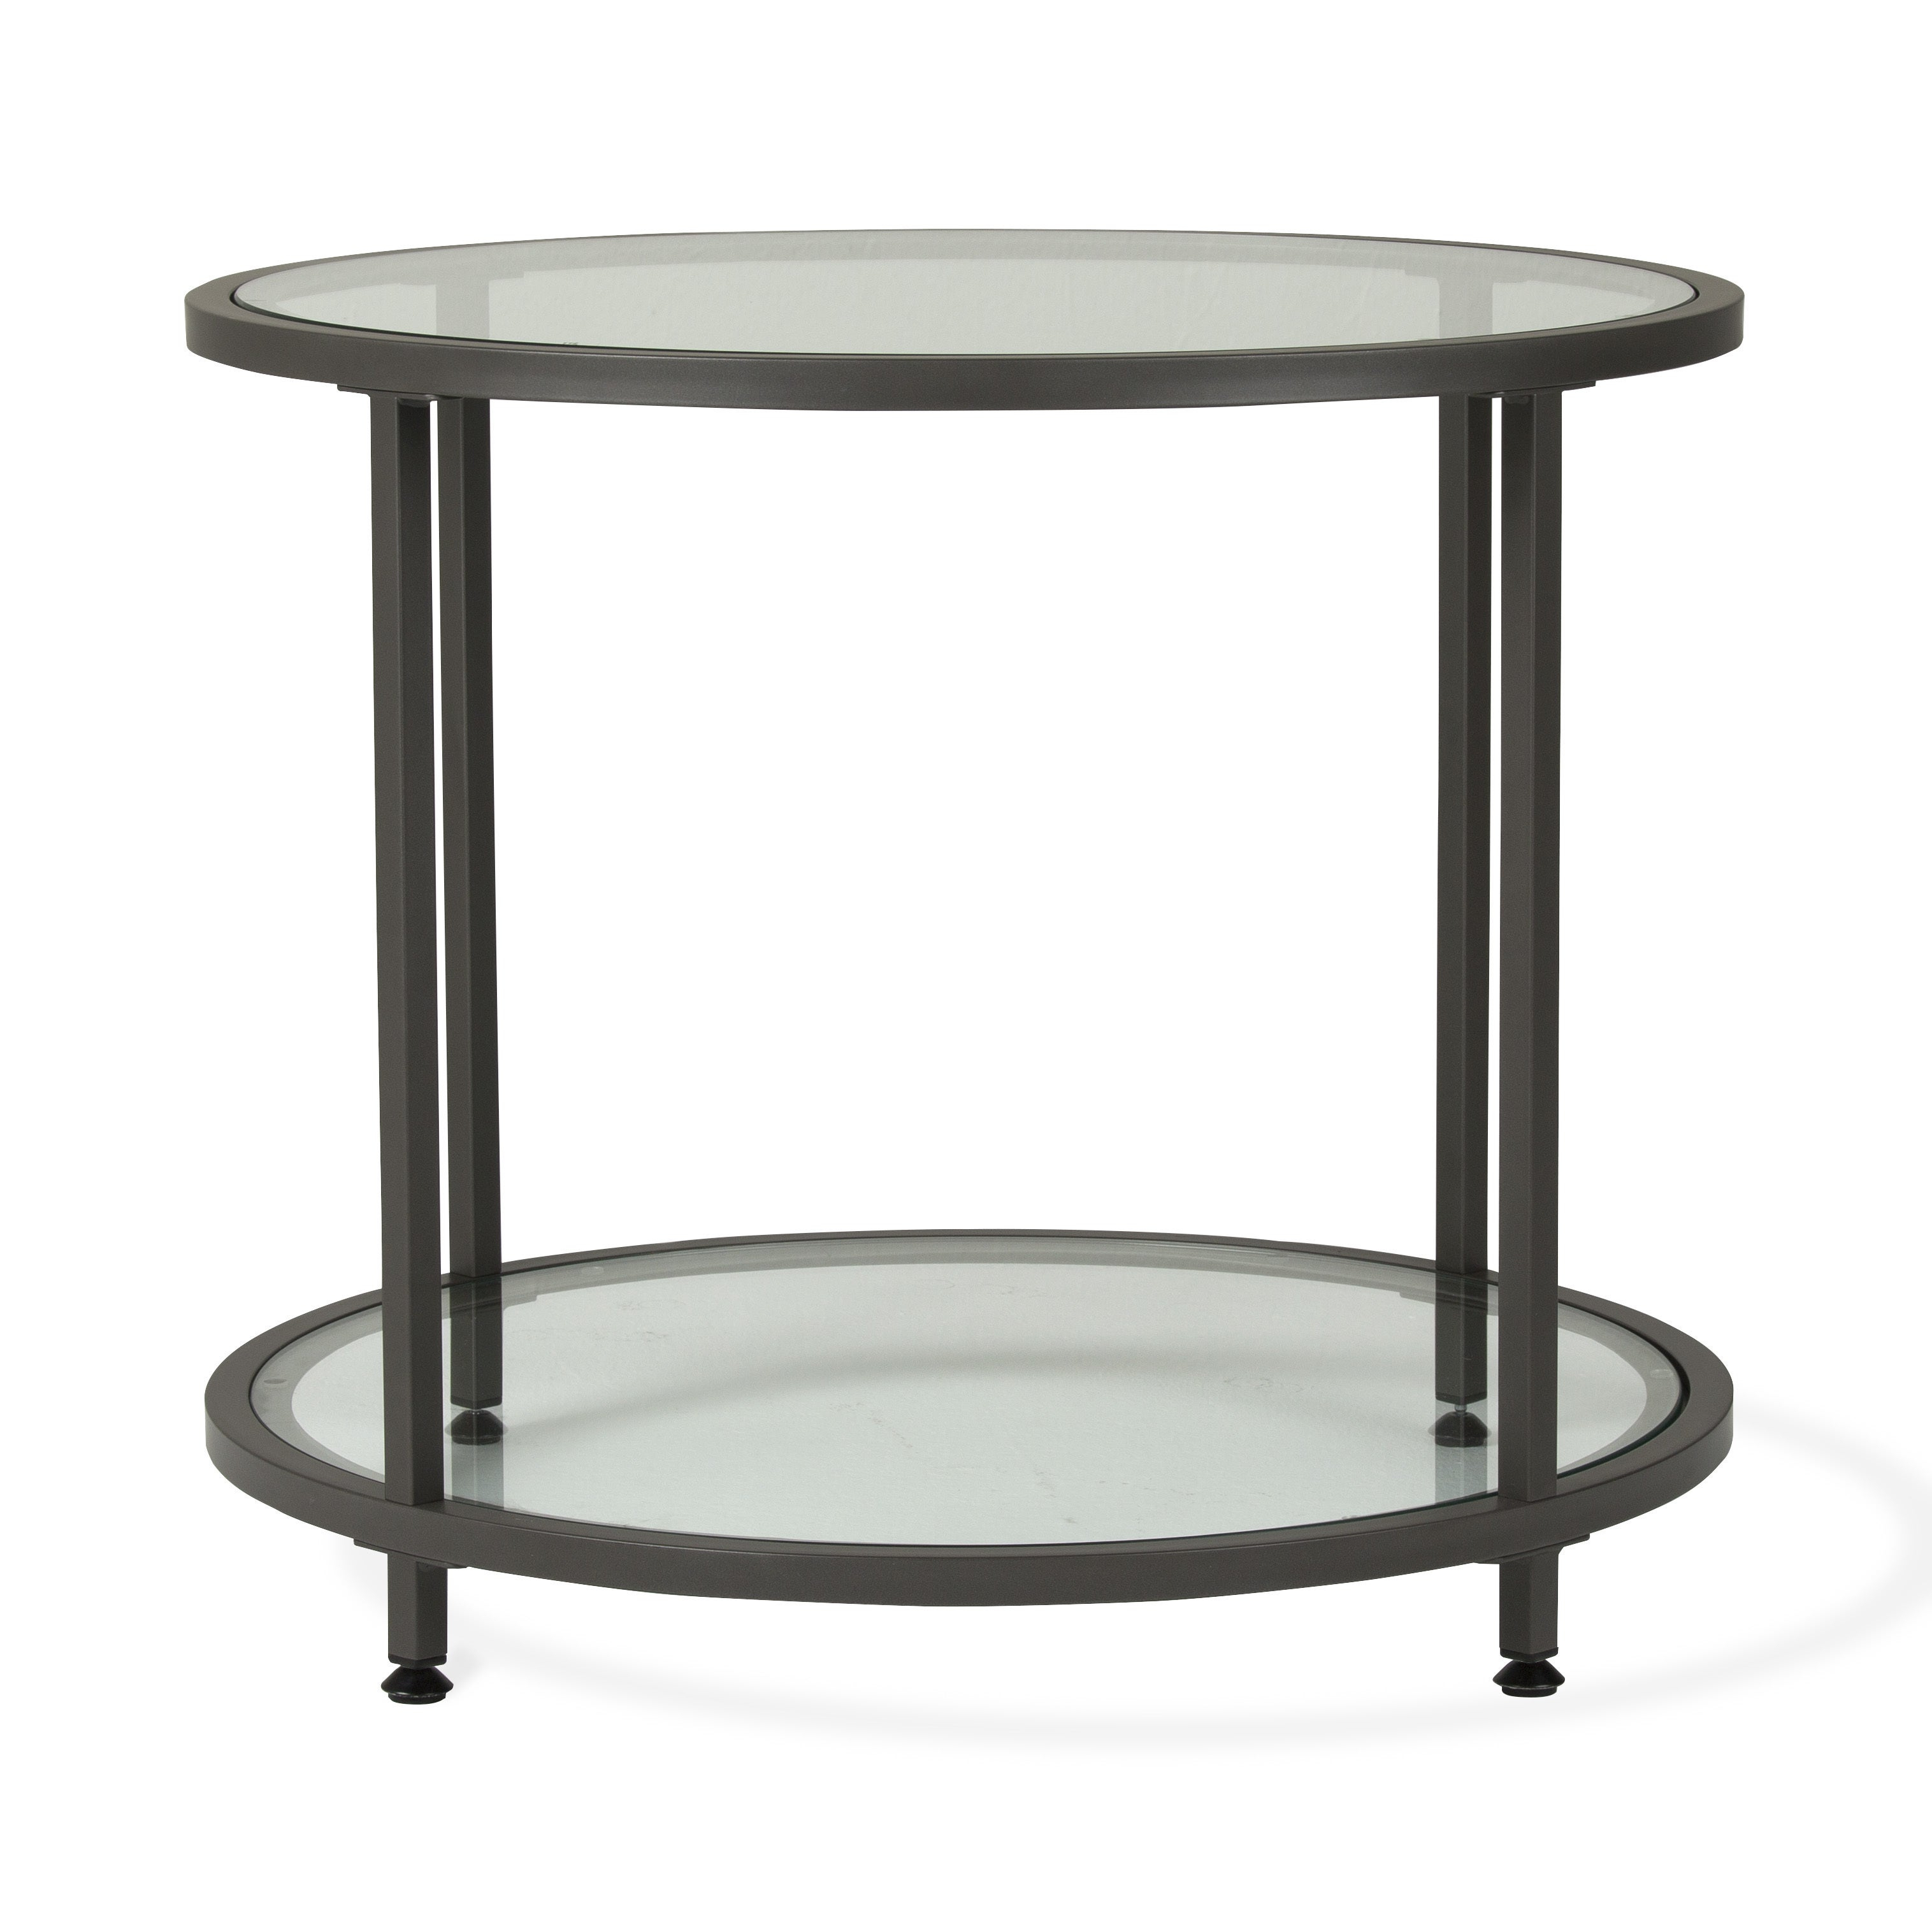 Carbon Loft Heimlich Pewter Metal Round Side Table Throughout 2019 Carbon Loft Heimlich Pewter Steel/glass Round Coffee Tables (View 6 of 20)